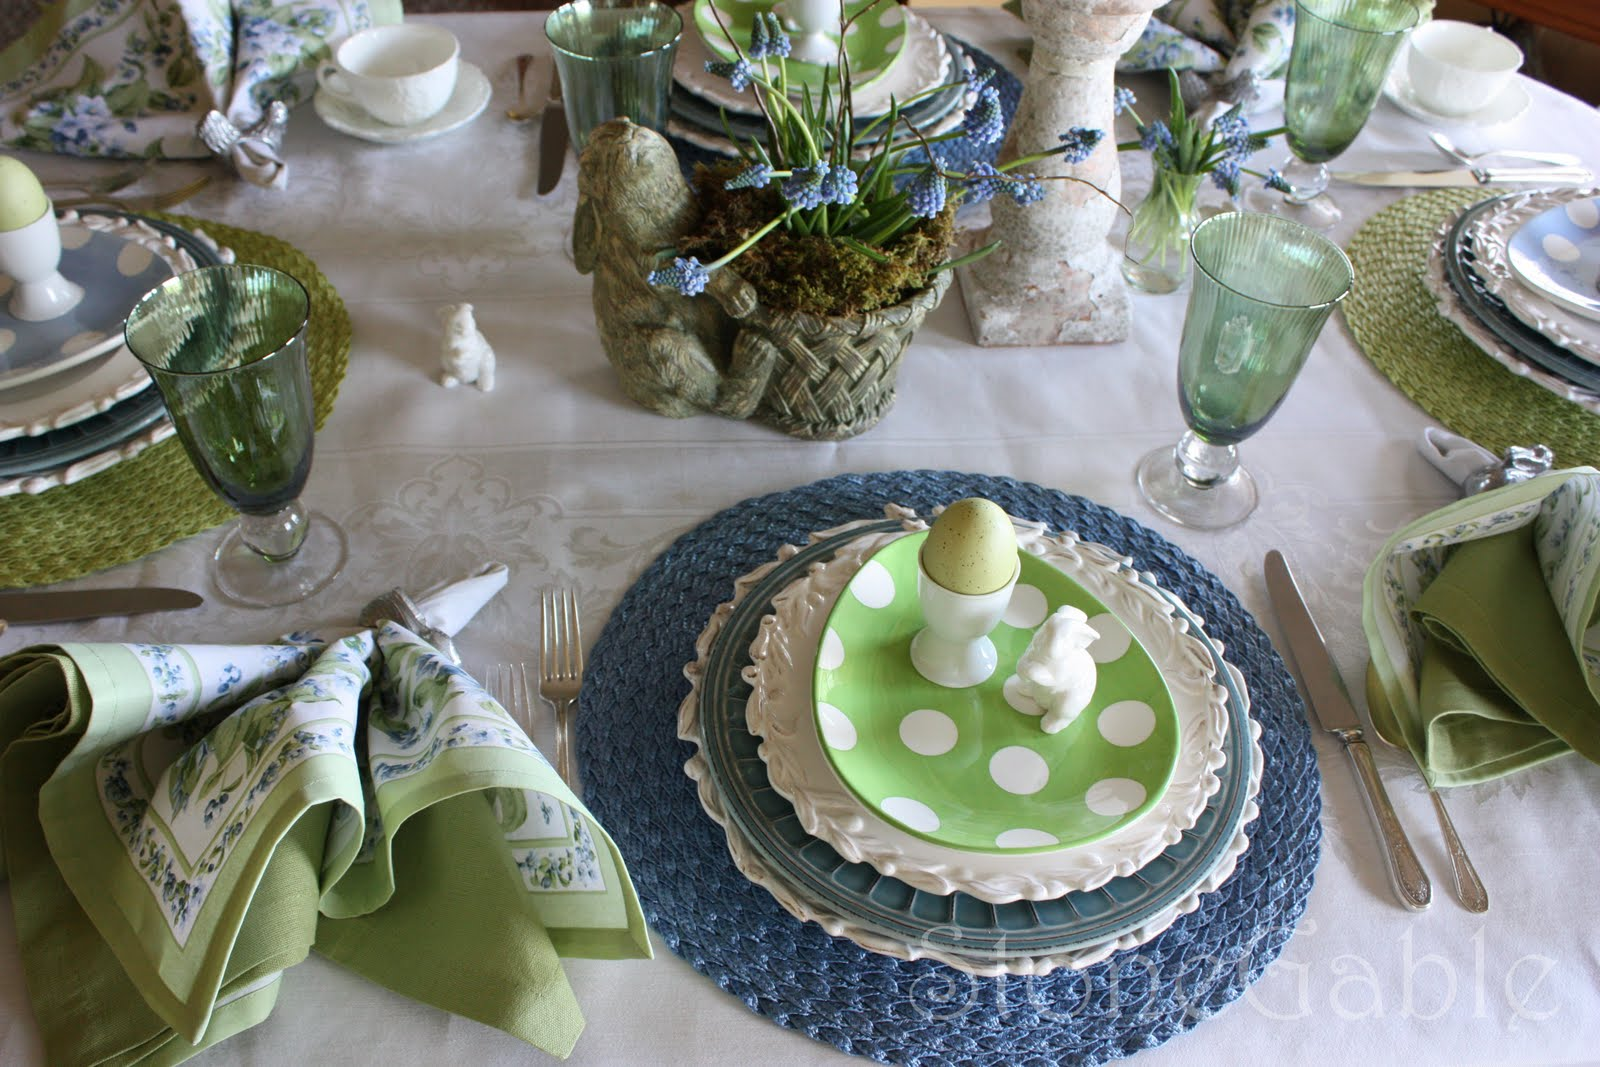 Easter brunch tablescape inspired by family for Easter dinner table setting ideas